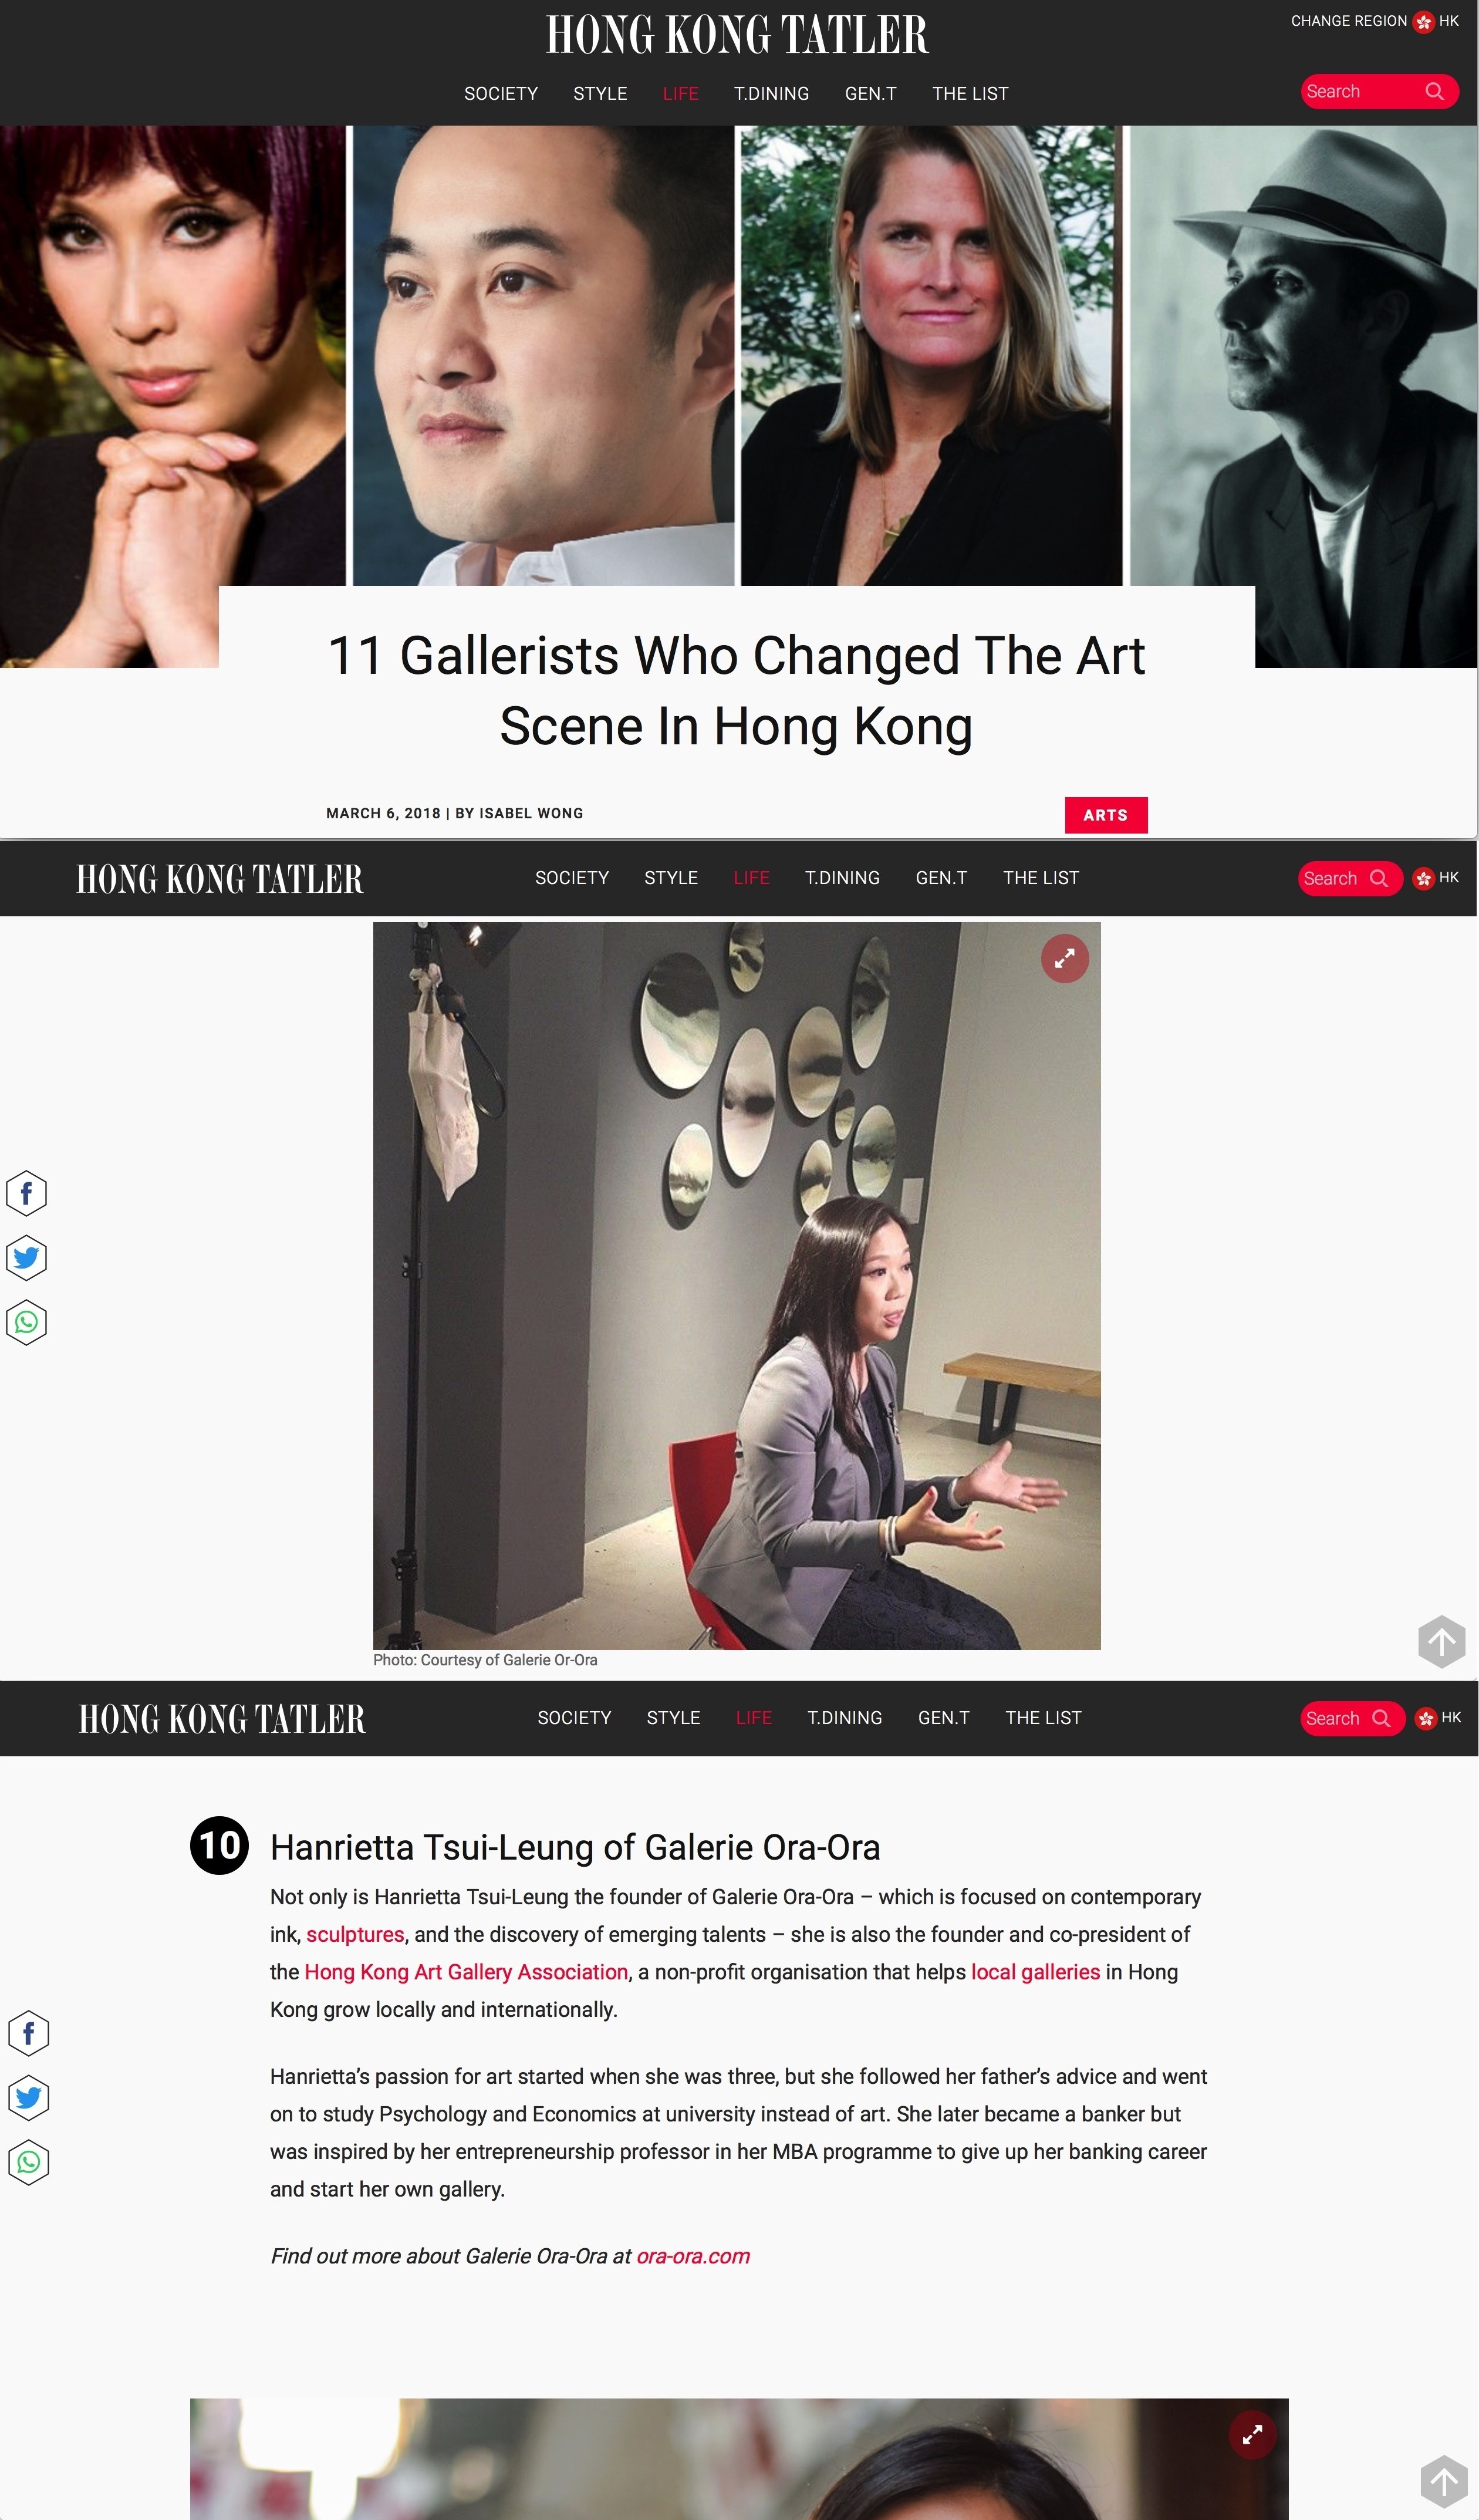 11 Gallerists Who Changed The Art Scene In Hong Kong | Galerie Ora-Ora